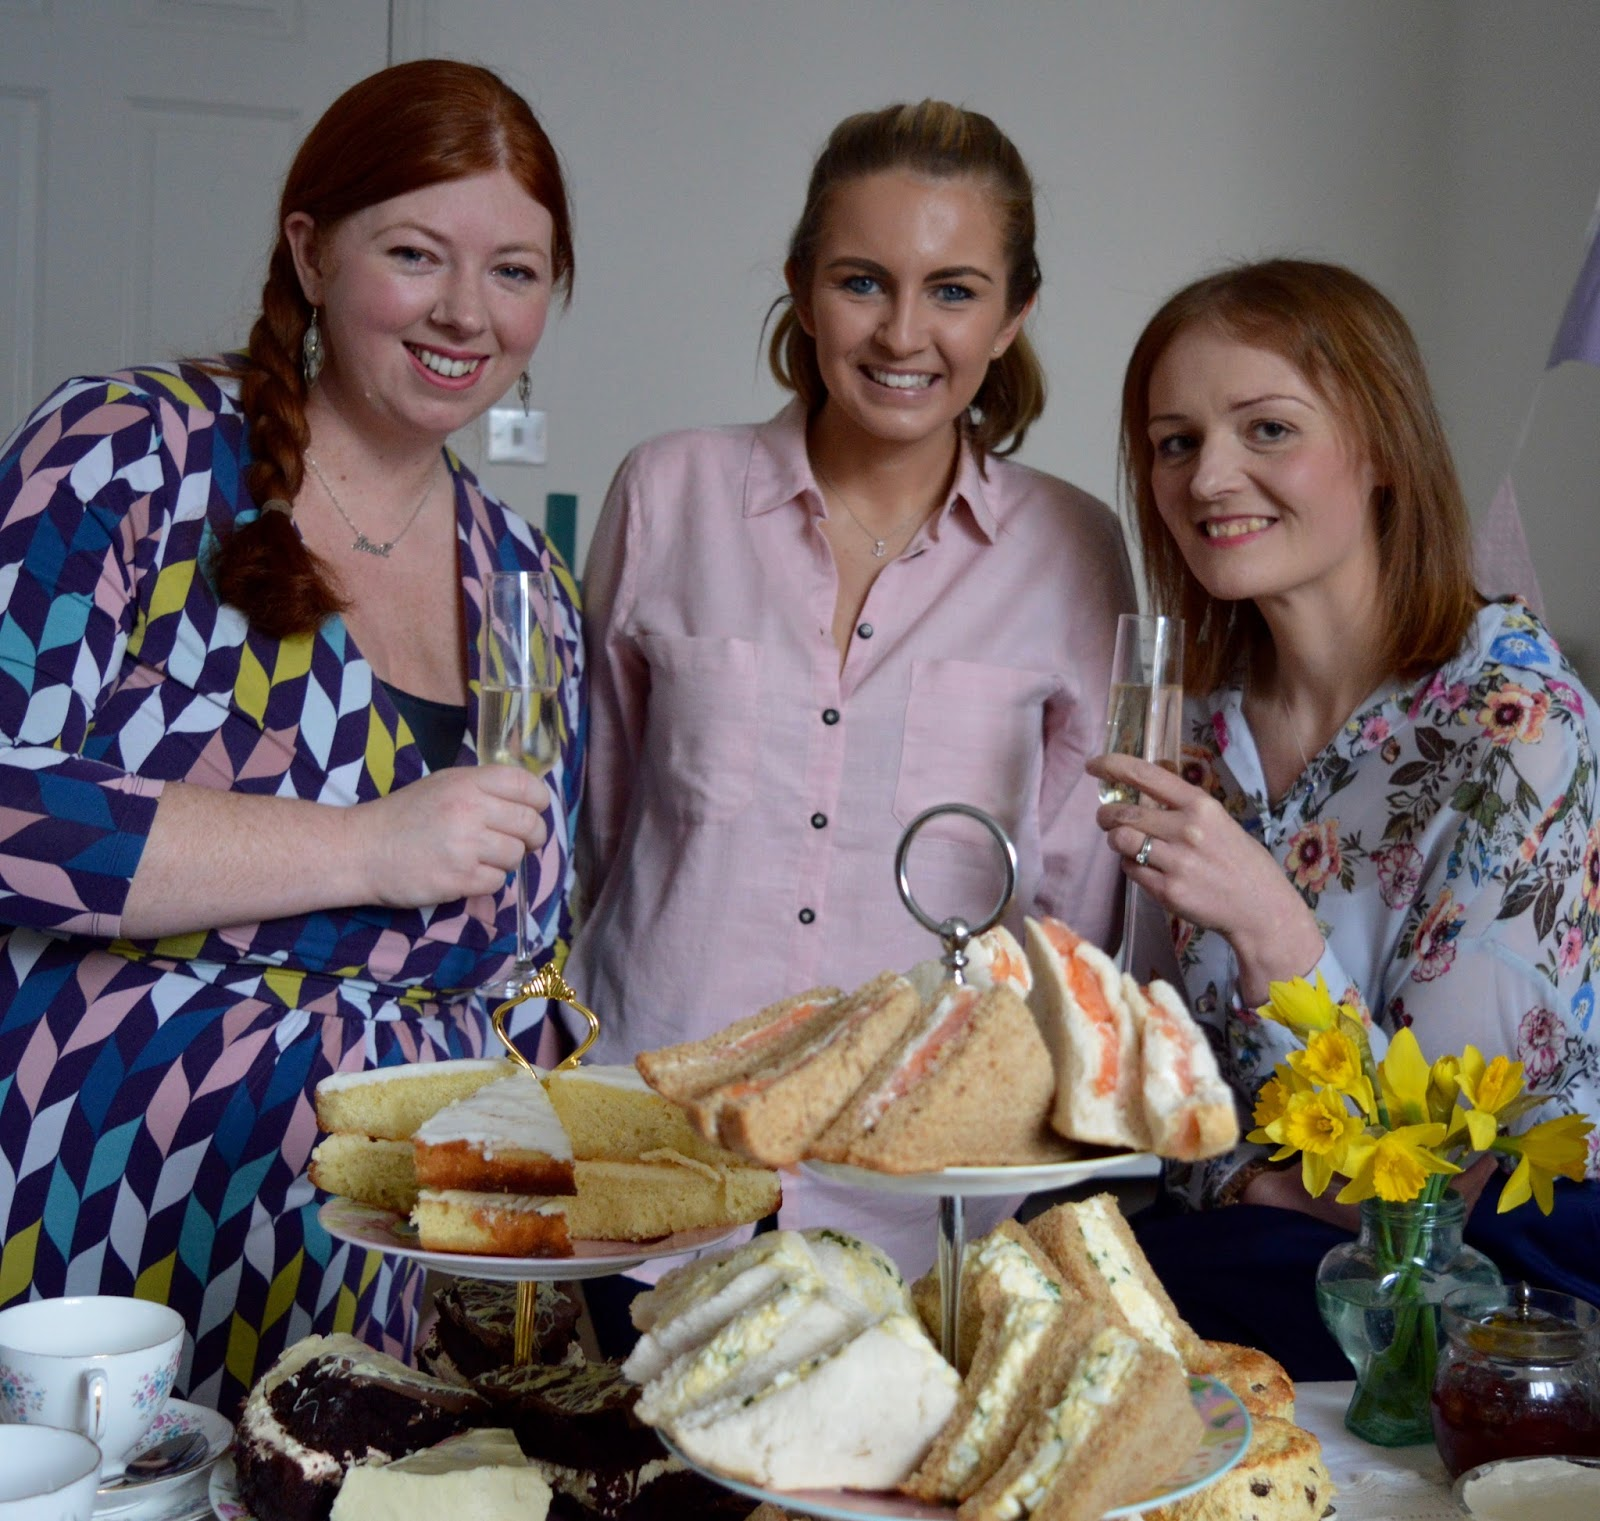 Afternoon Tea delivered in Newcastle with Mrs Dellows Delights - Afternoon tea at Chloes